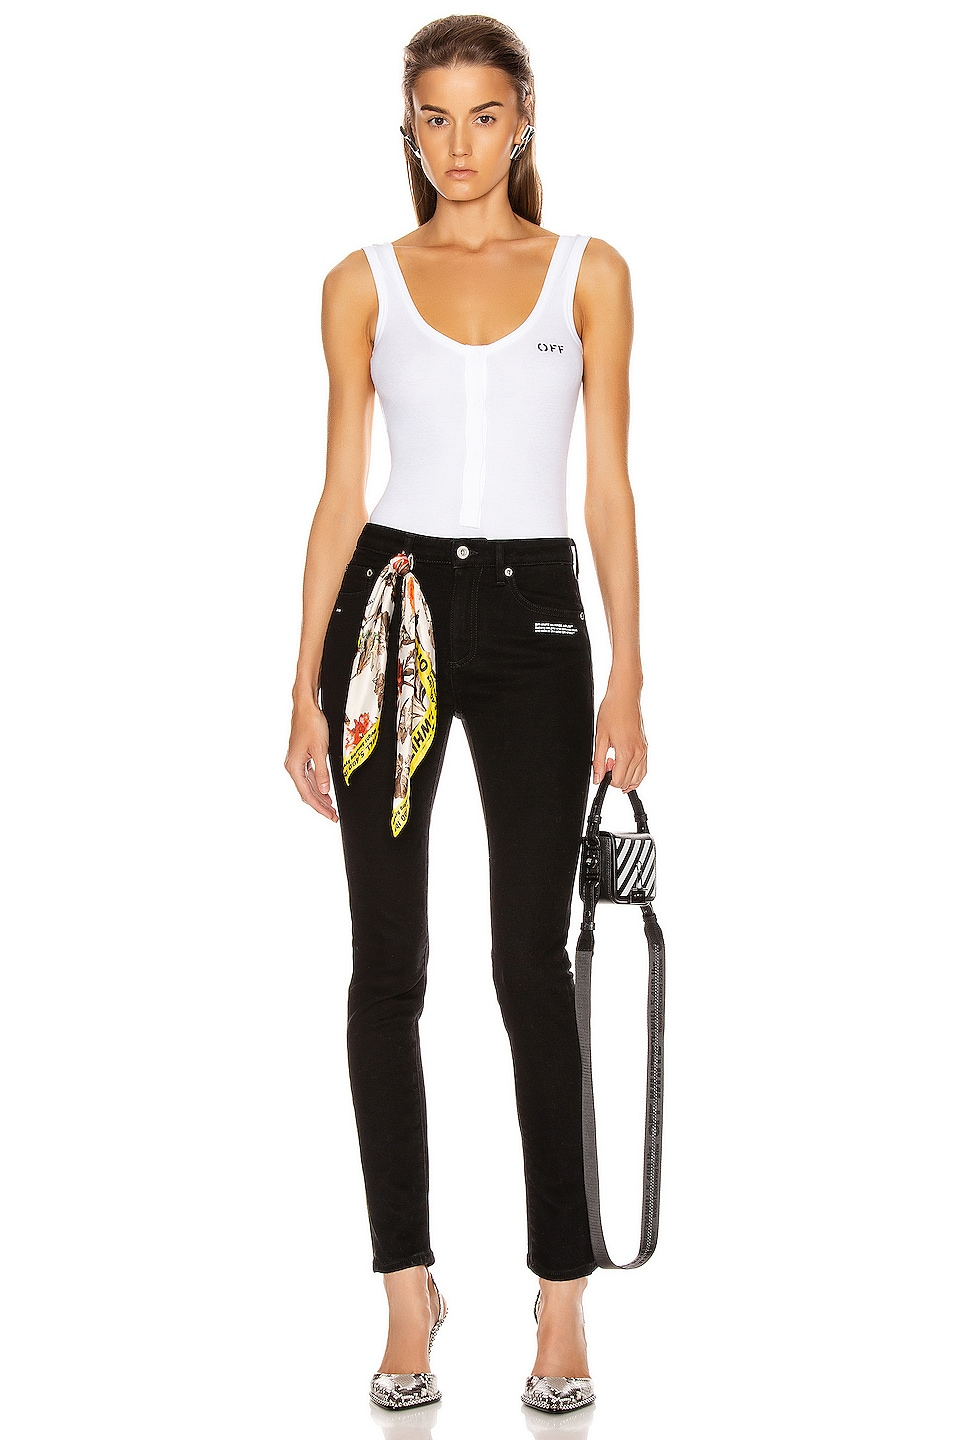 Image 5 of OFF-WHITE Buttoned Up Bodysuit in White & Black